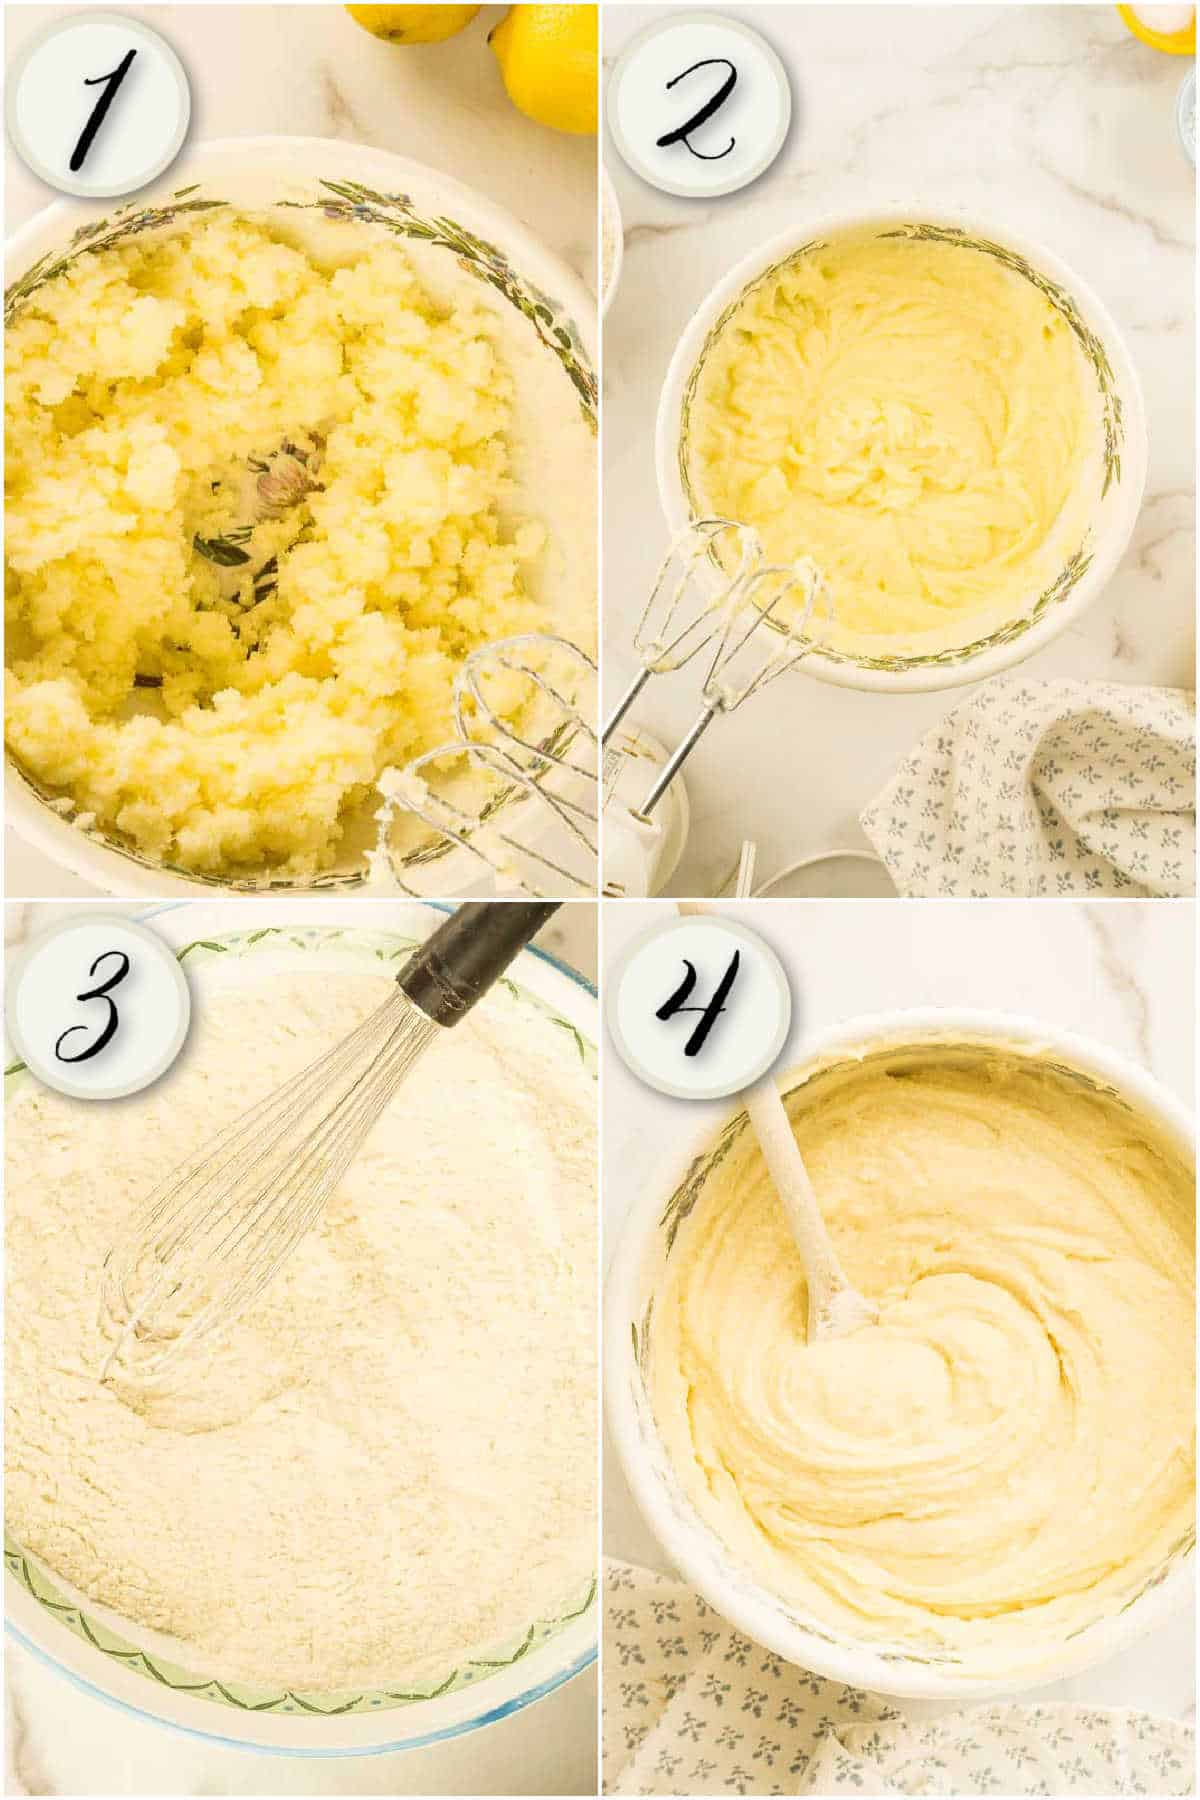 grid of 4 images: beating butter and sugar, adding eggs, mixing dry ingredients, and stirring batter